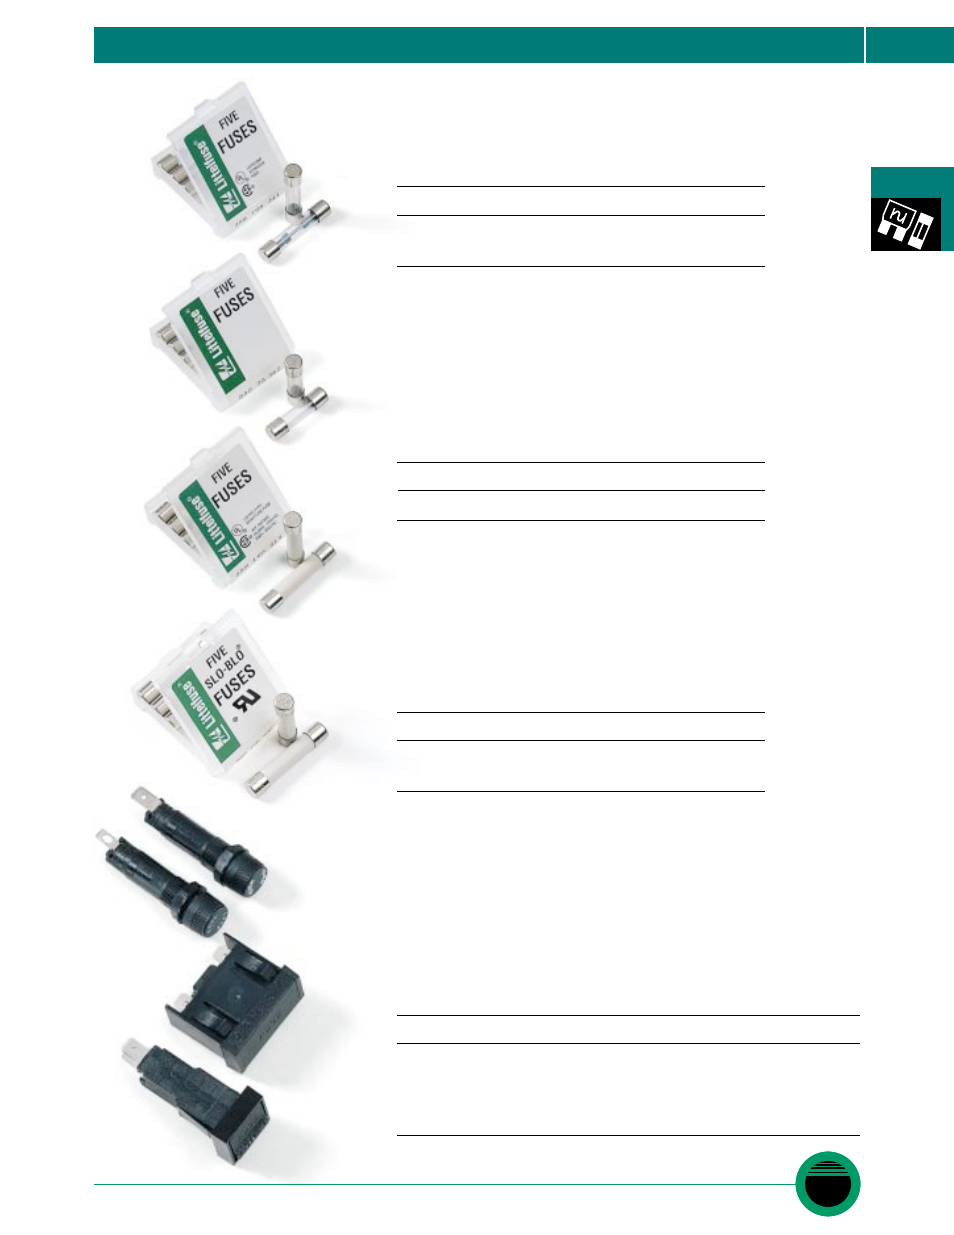 Littelfuse Isf Fuseholder Carded Series User Manual 1 Page Fuses Types Of